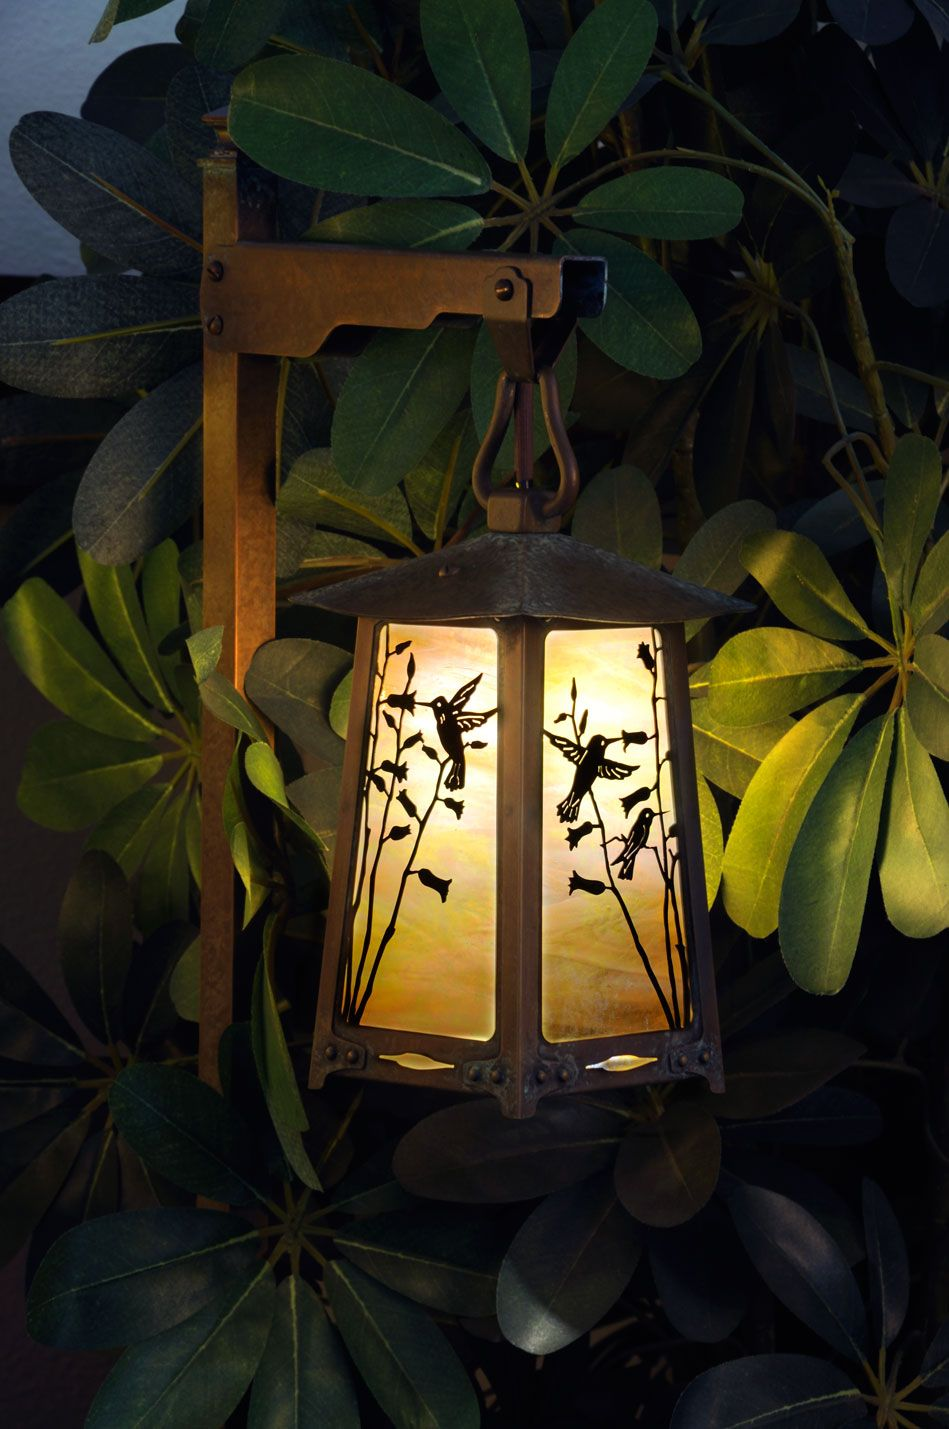 A Custom And Beautiful Humming Bird 12 Volt Path Light Beautiful By Day And So Functional At Night To Light Your Way Solid Br Exterior Light Fixtures Outdoor Post Lights House Lamp